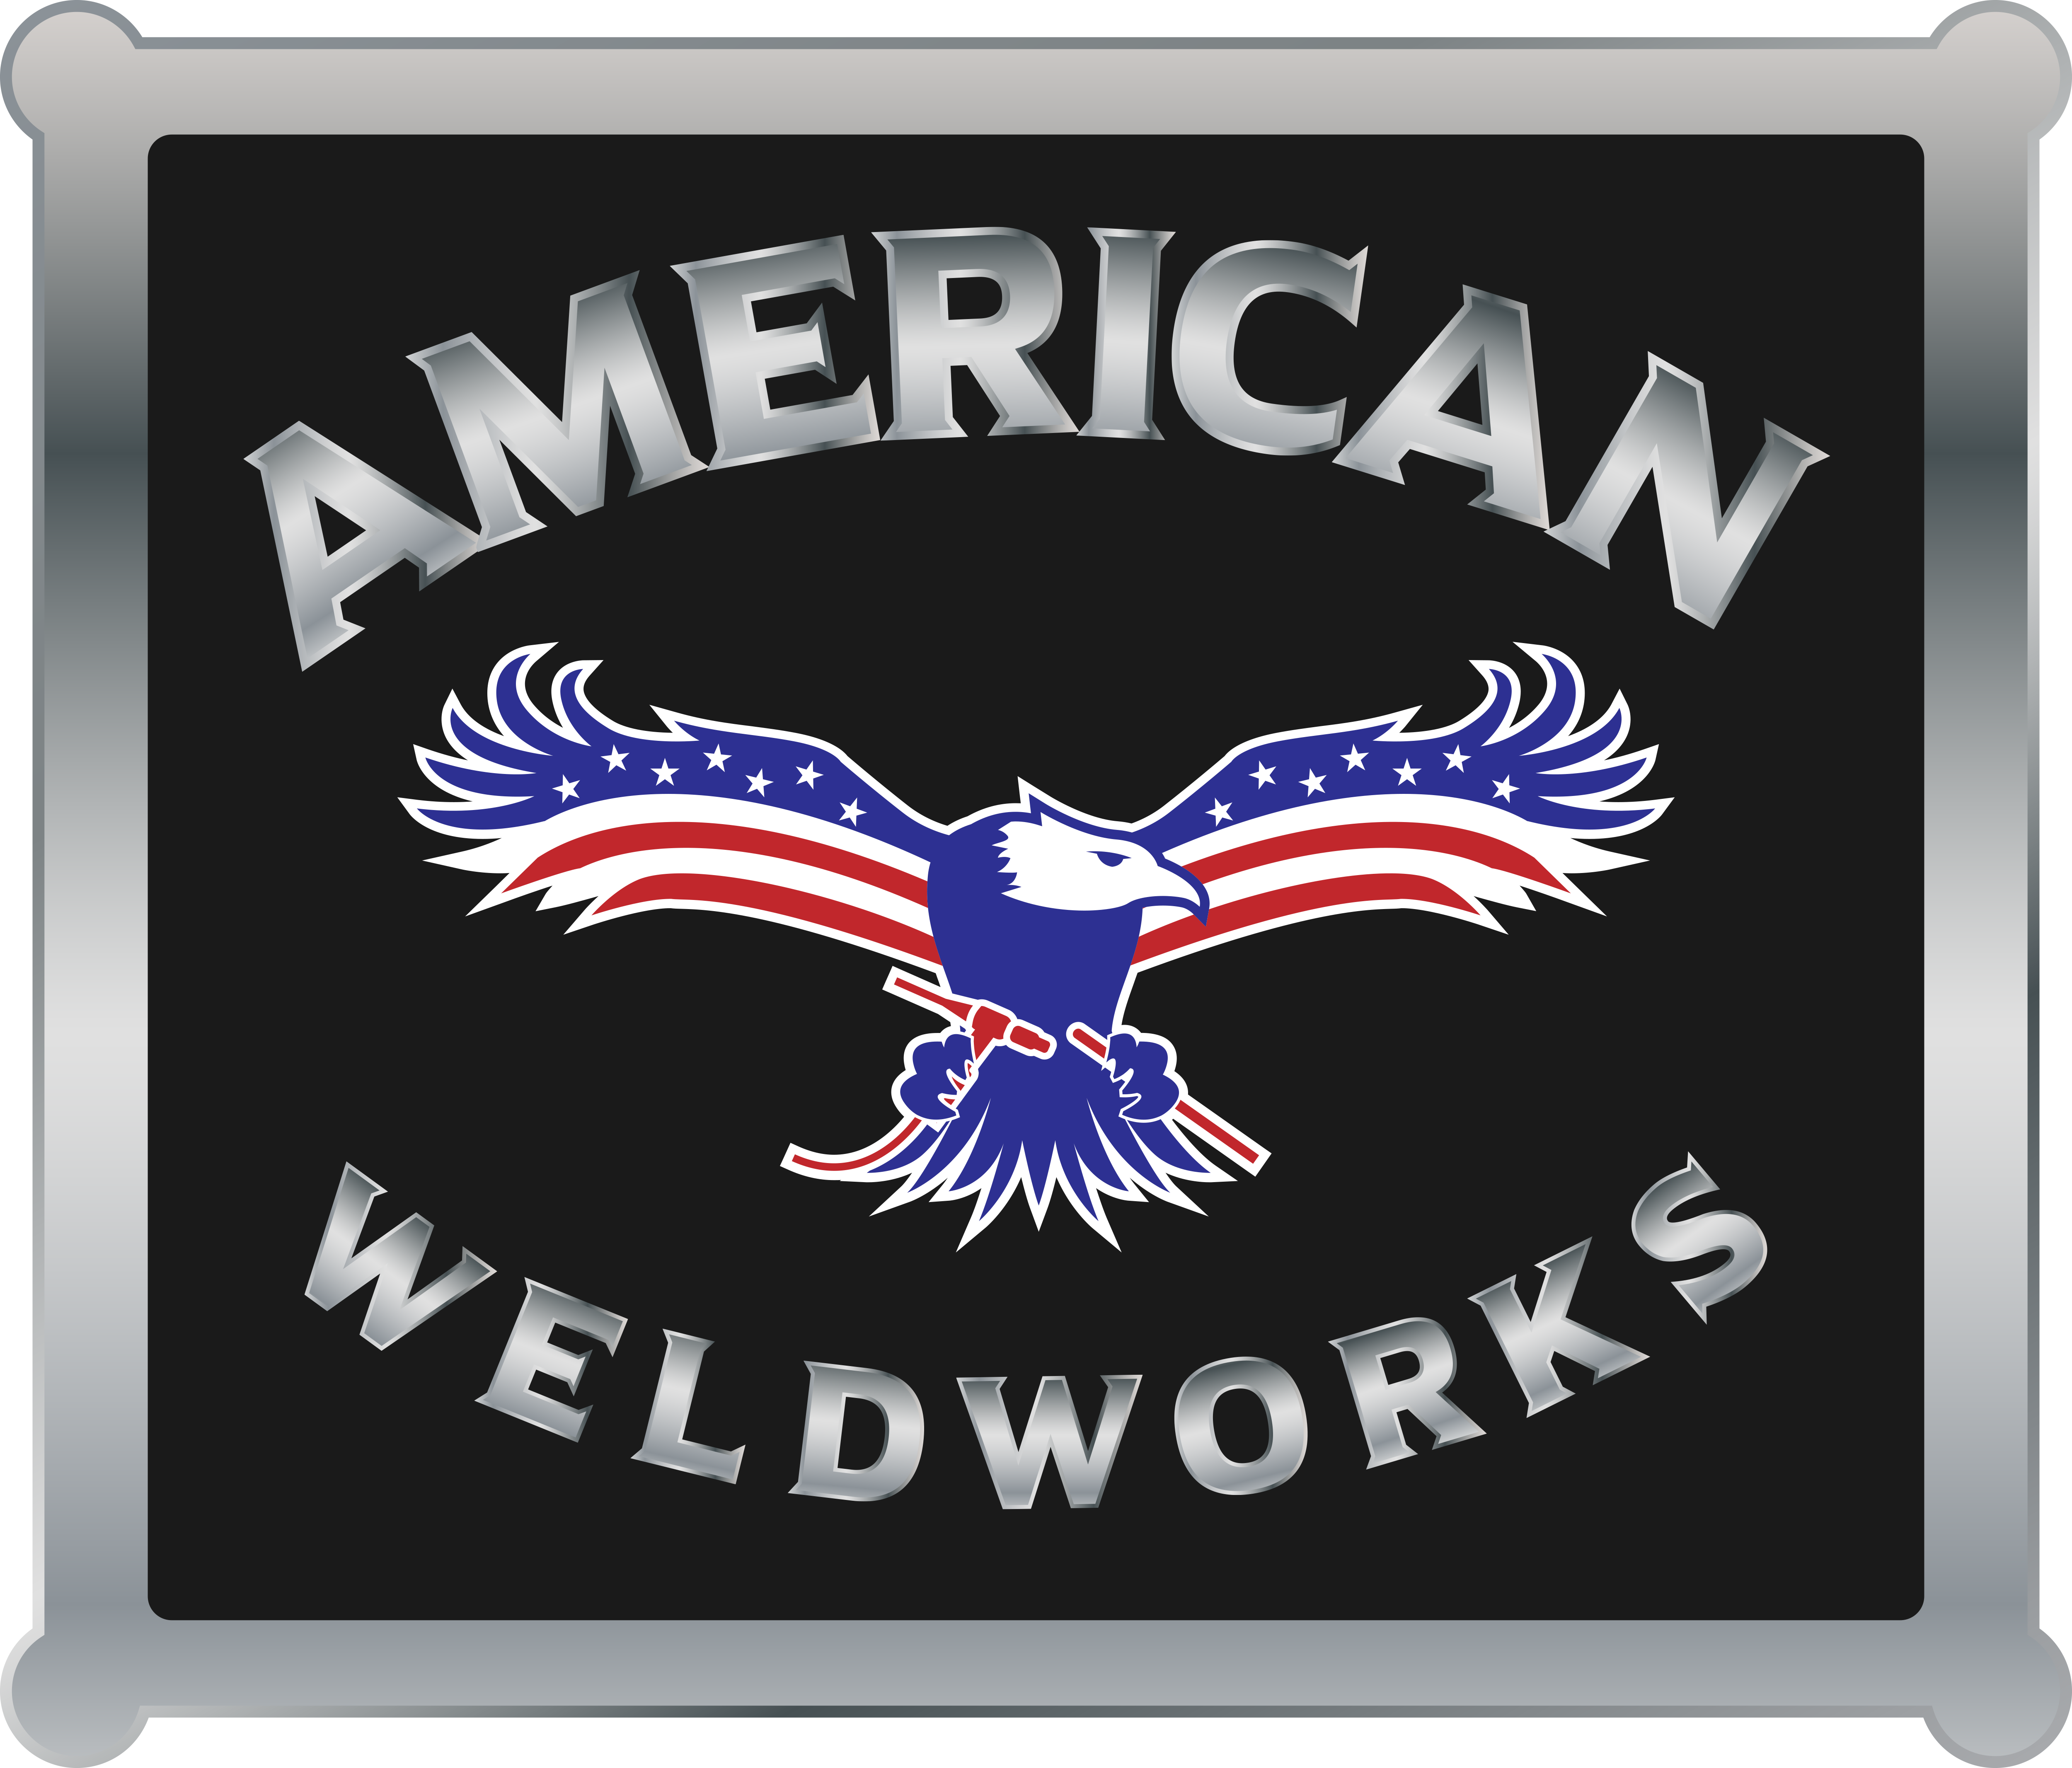 welding and fabrication company needs logo design that will be on website, business cards, clothing